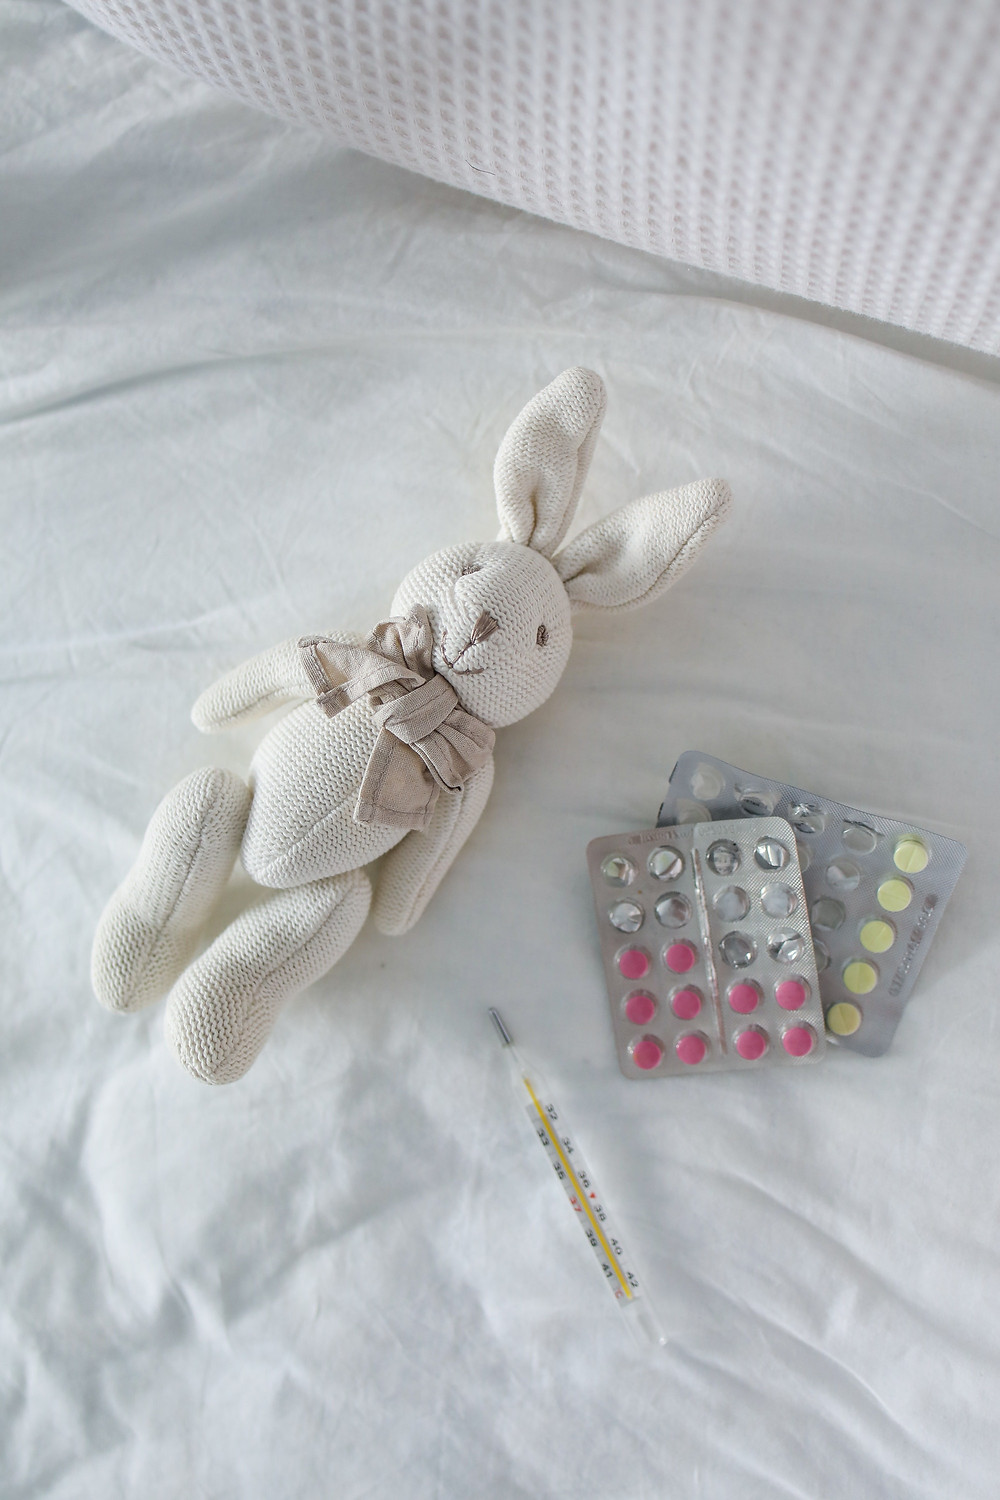 bunny with meds and themometer